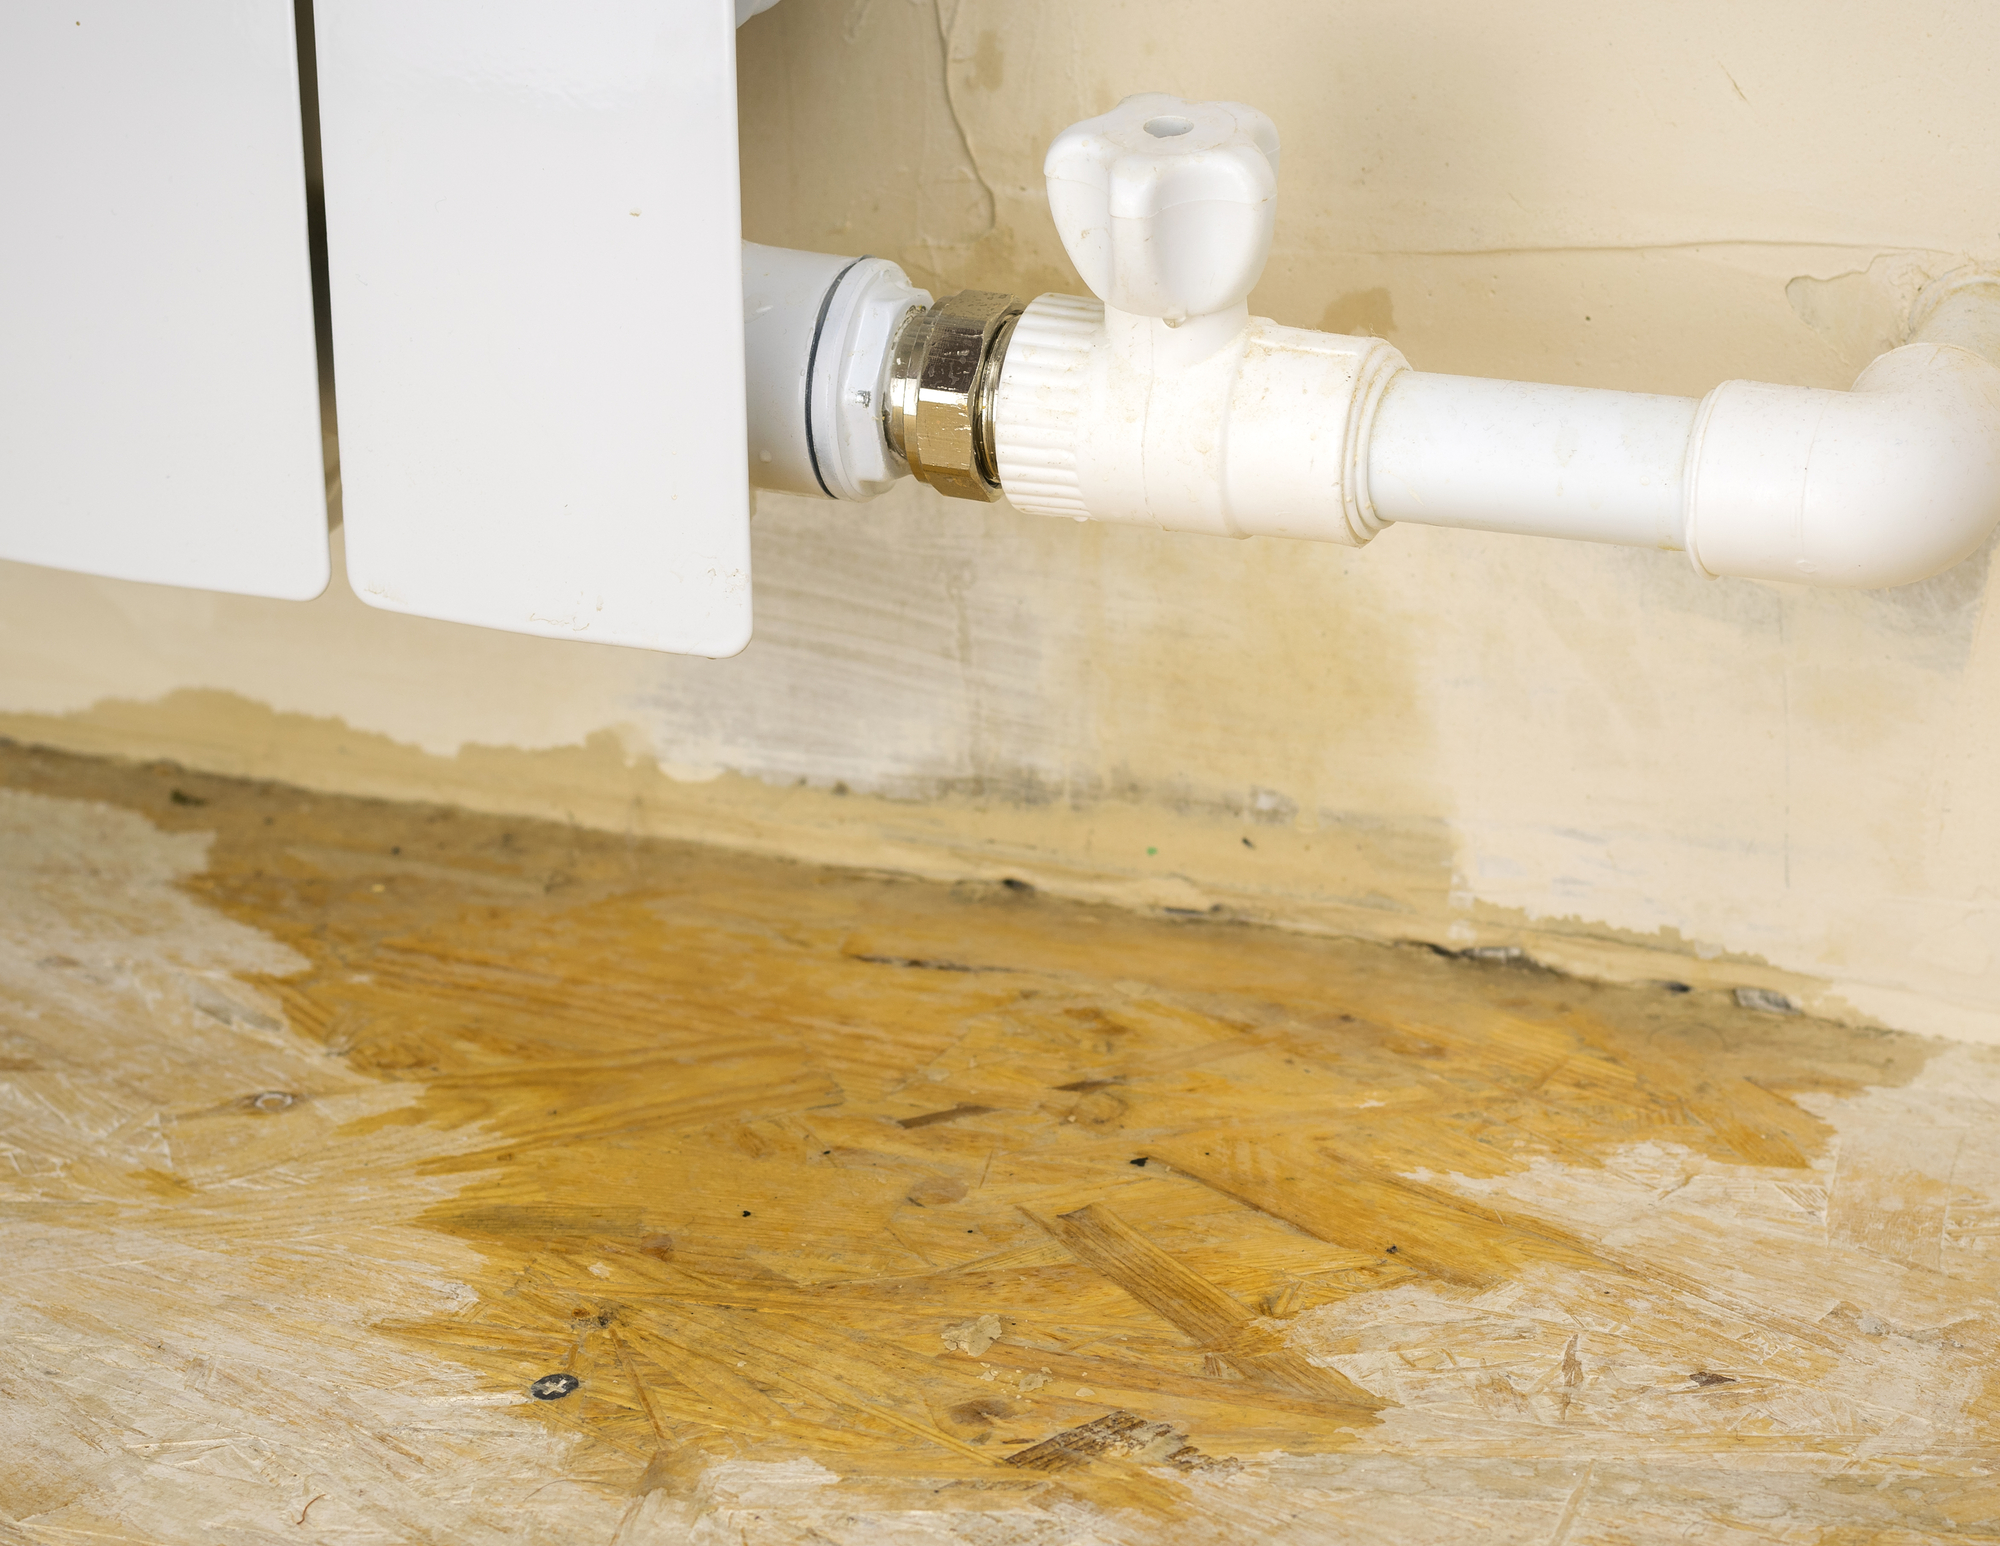 Damage to the heating system in a private home